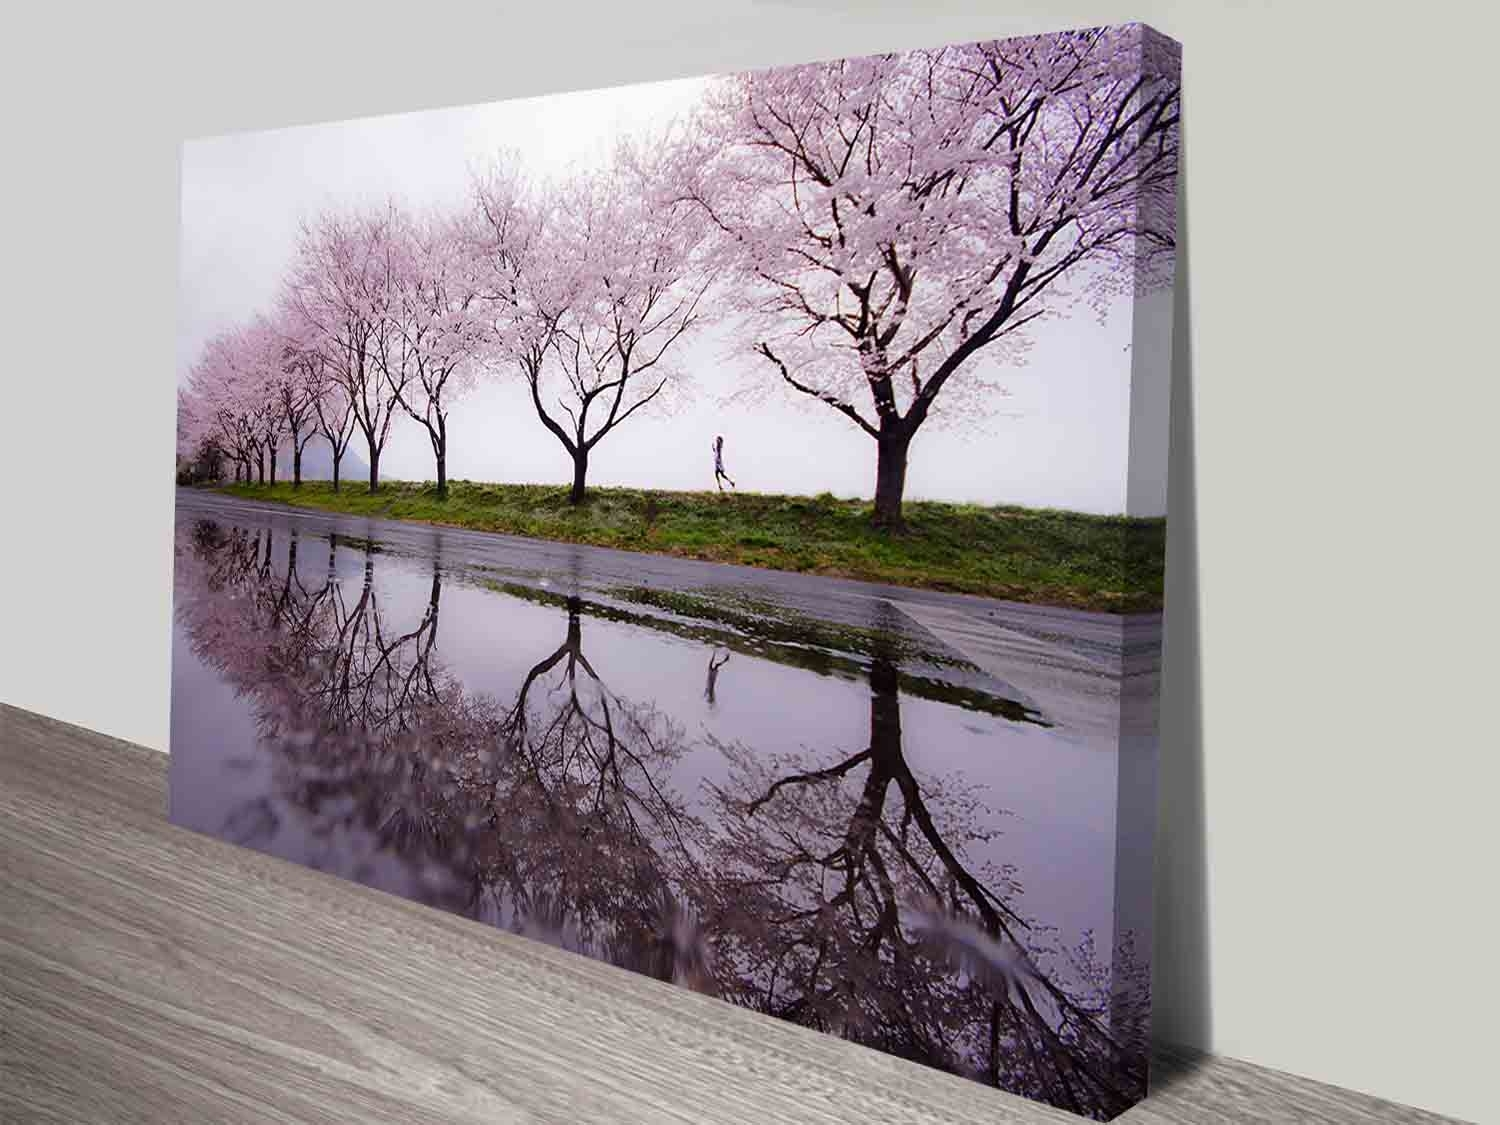 Photos On Canvas Melbourne | Perfect Gift Ideas For Dad in Latest Canvas Wall Art In Melbourne